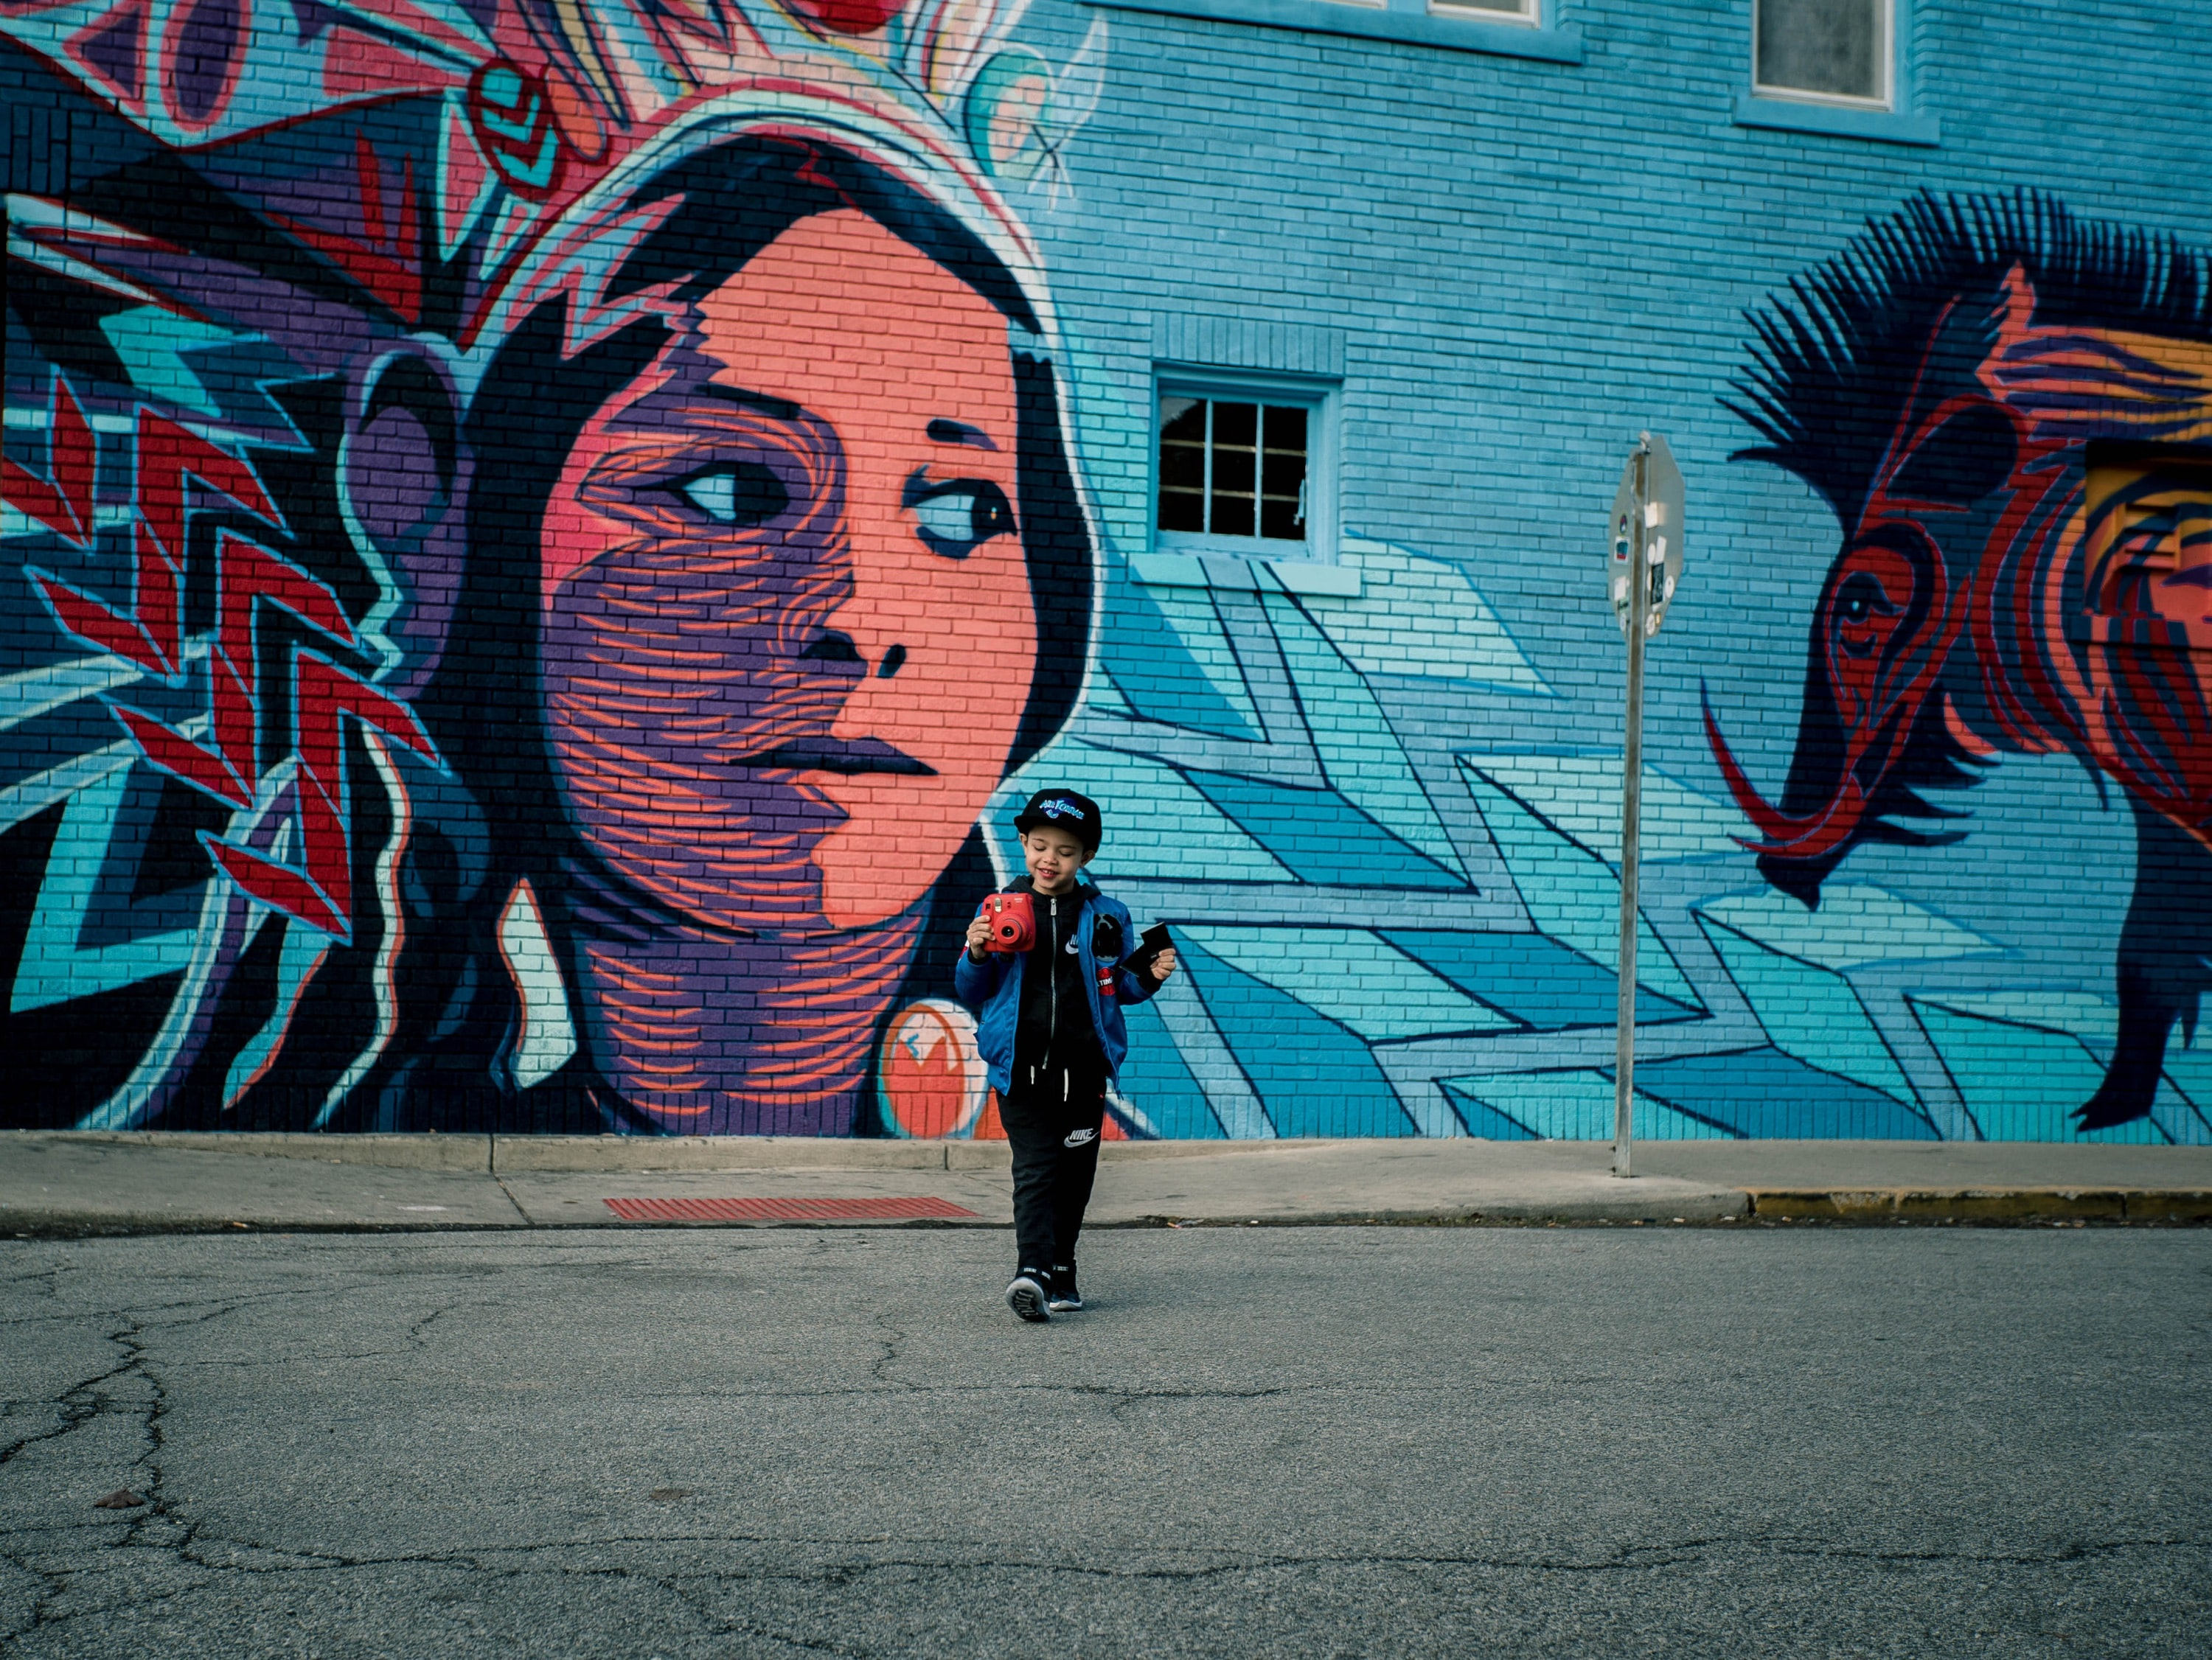 Young boy in cap standing on pavement near graffiti mural with blue background and woman's face